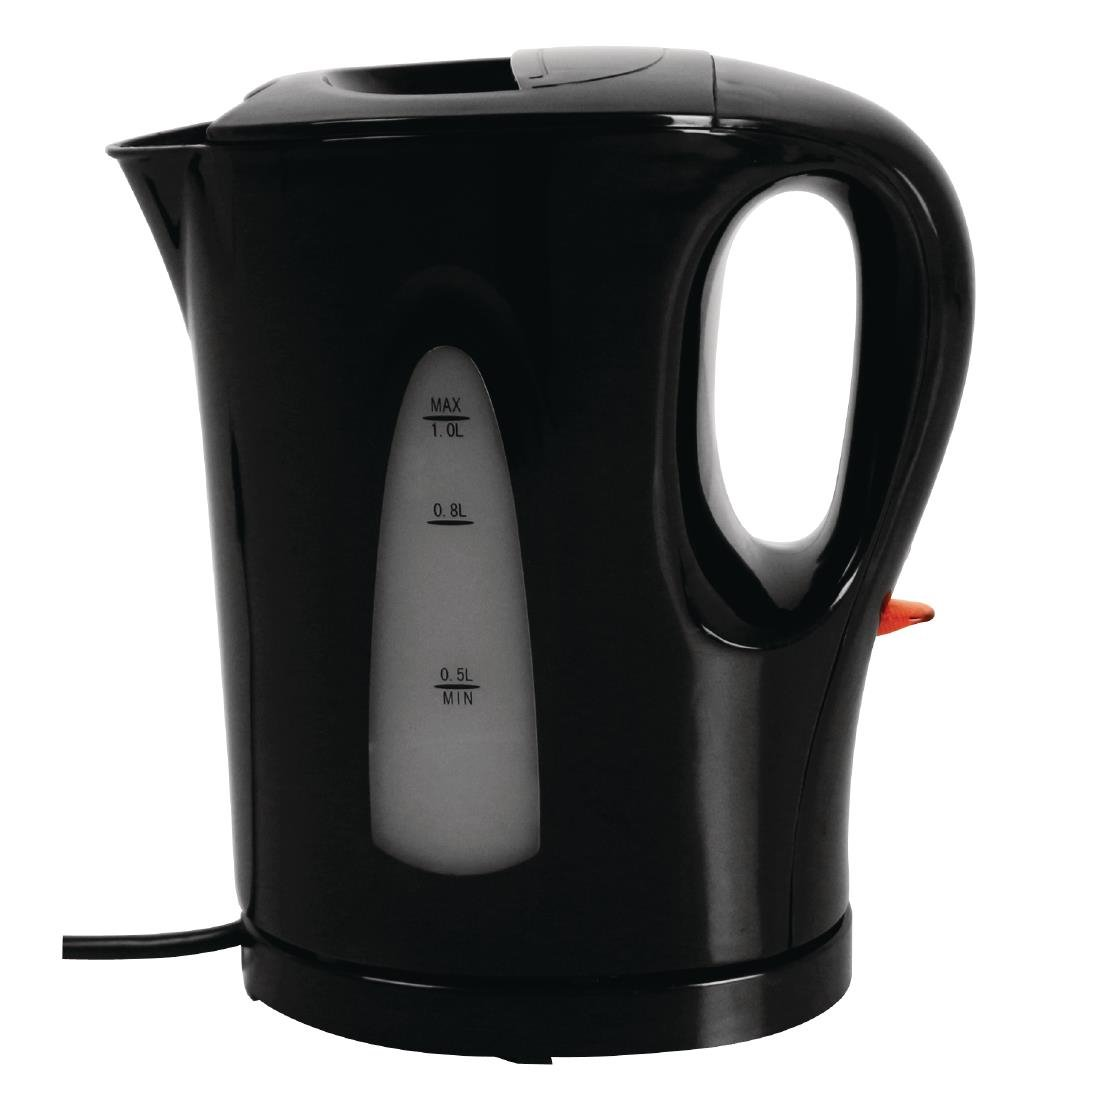 Caterlite Hotel Room Kettle - Plastic 1.0L Black